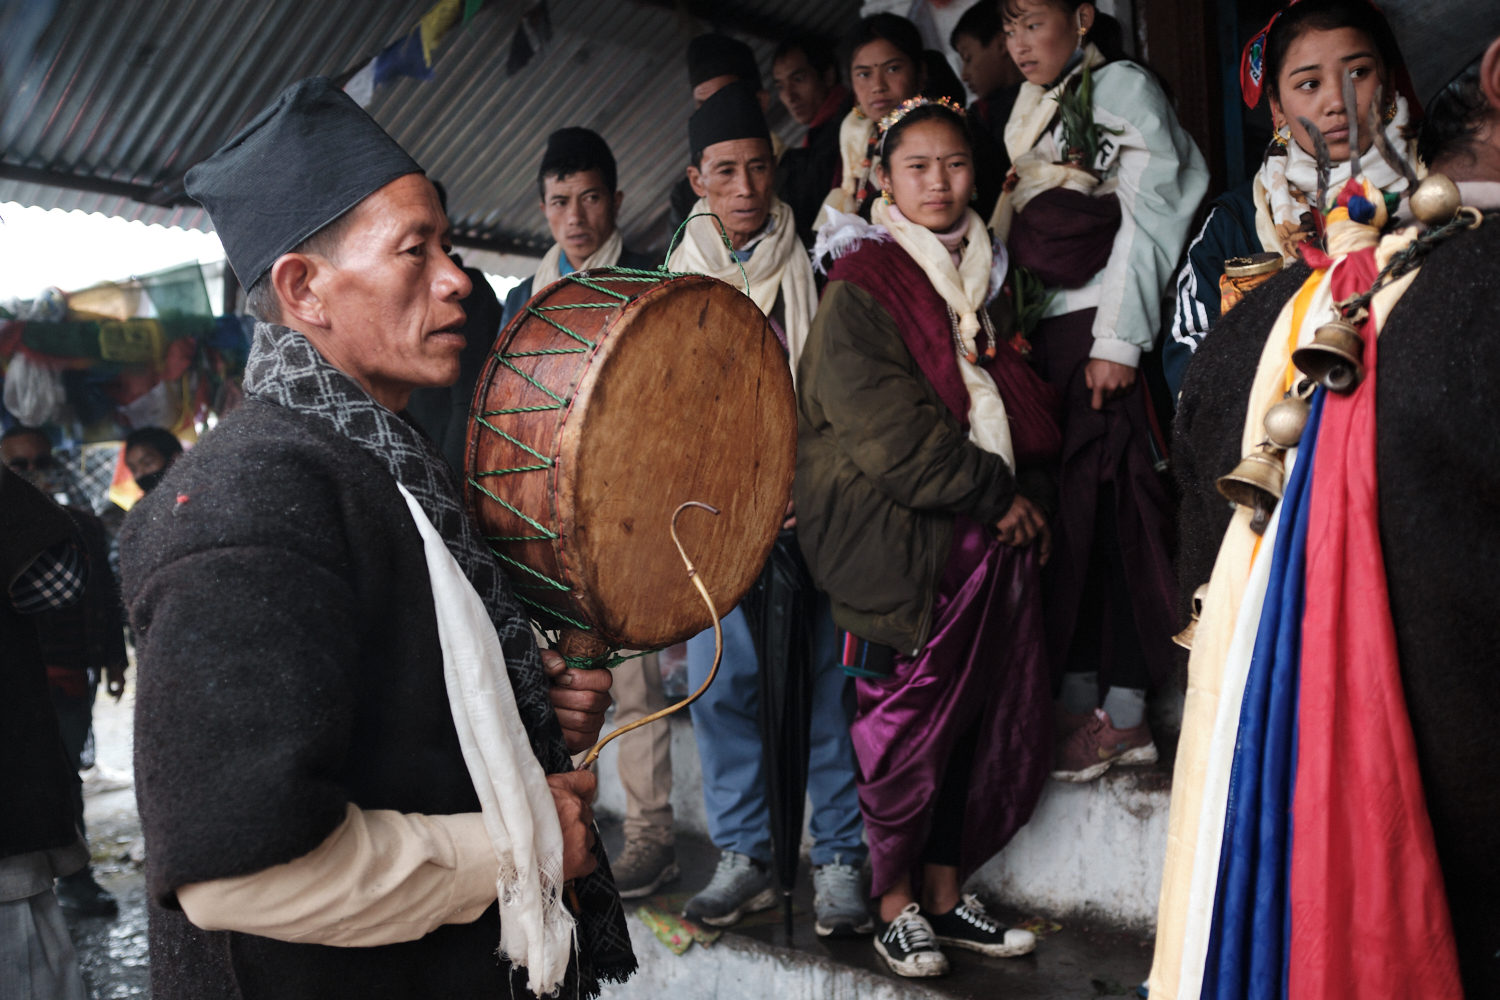 A shaman playing 'dhyangro' drum as other observe the ceremony